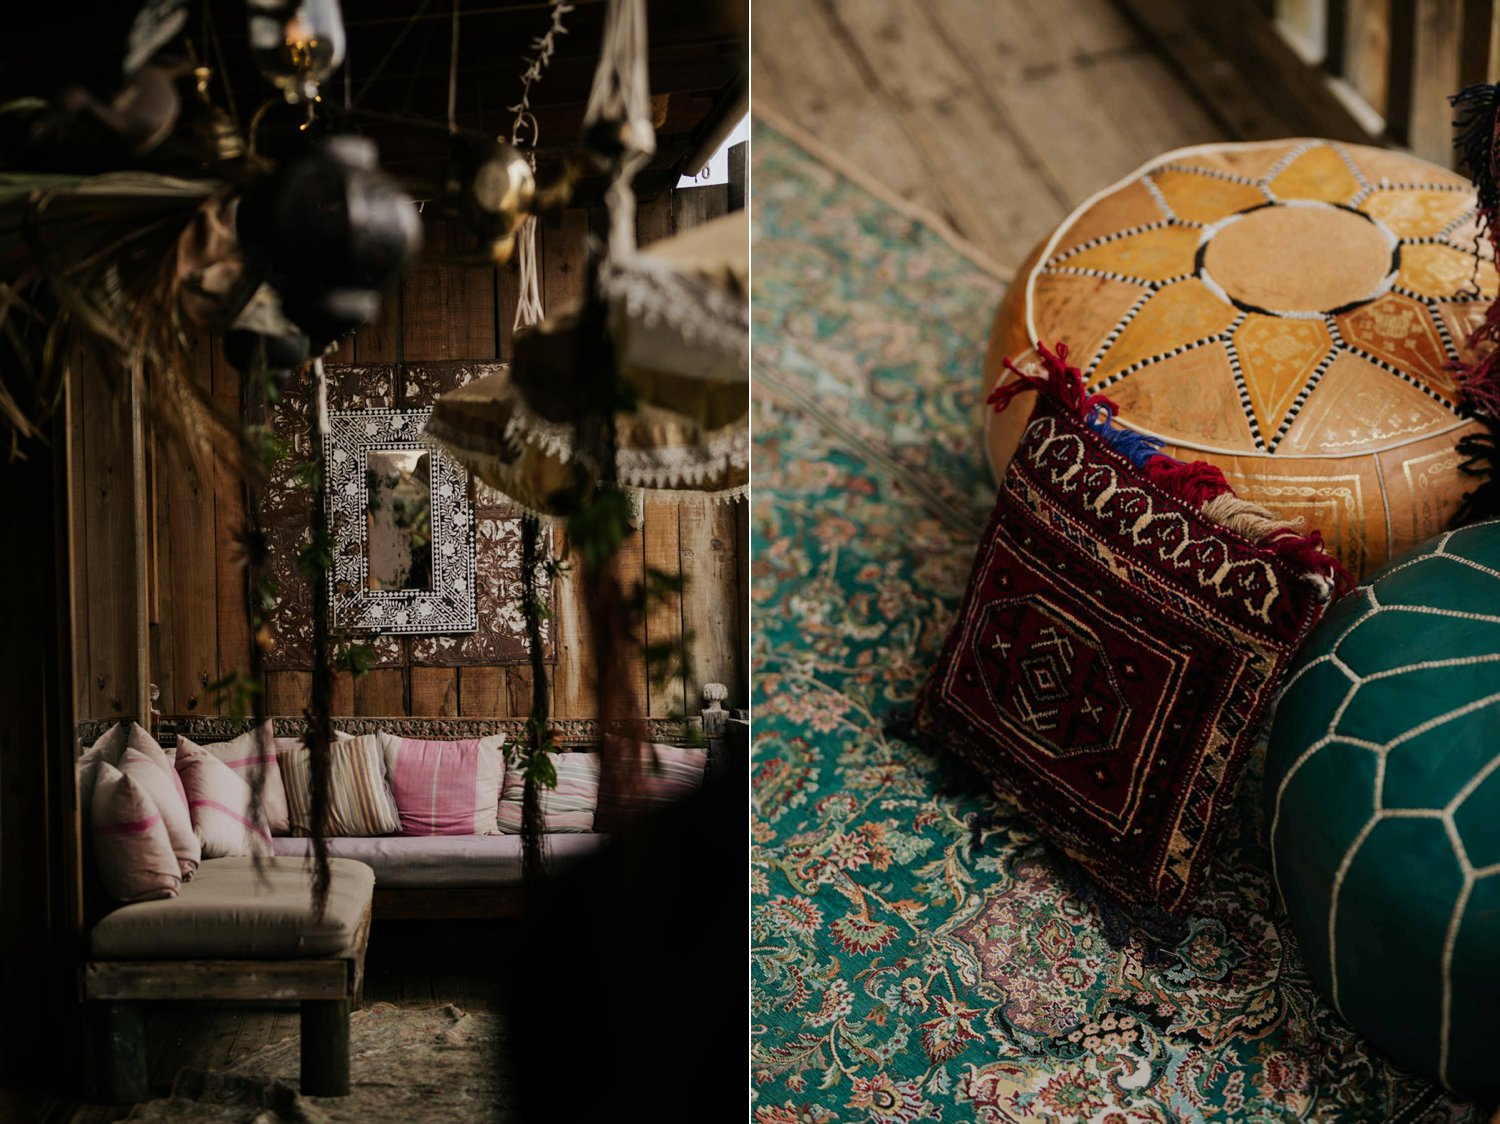 Decor and furniture inspiration and details at Boho Chic Wedding